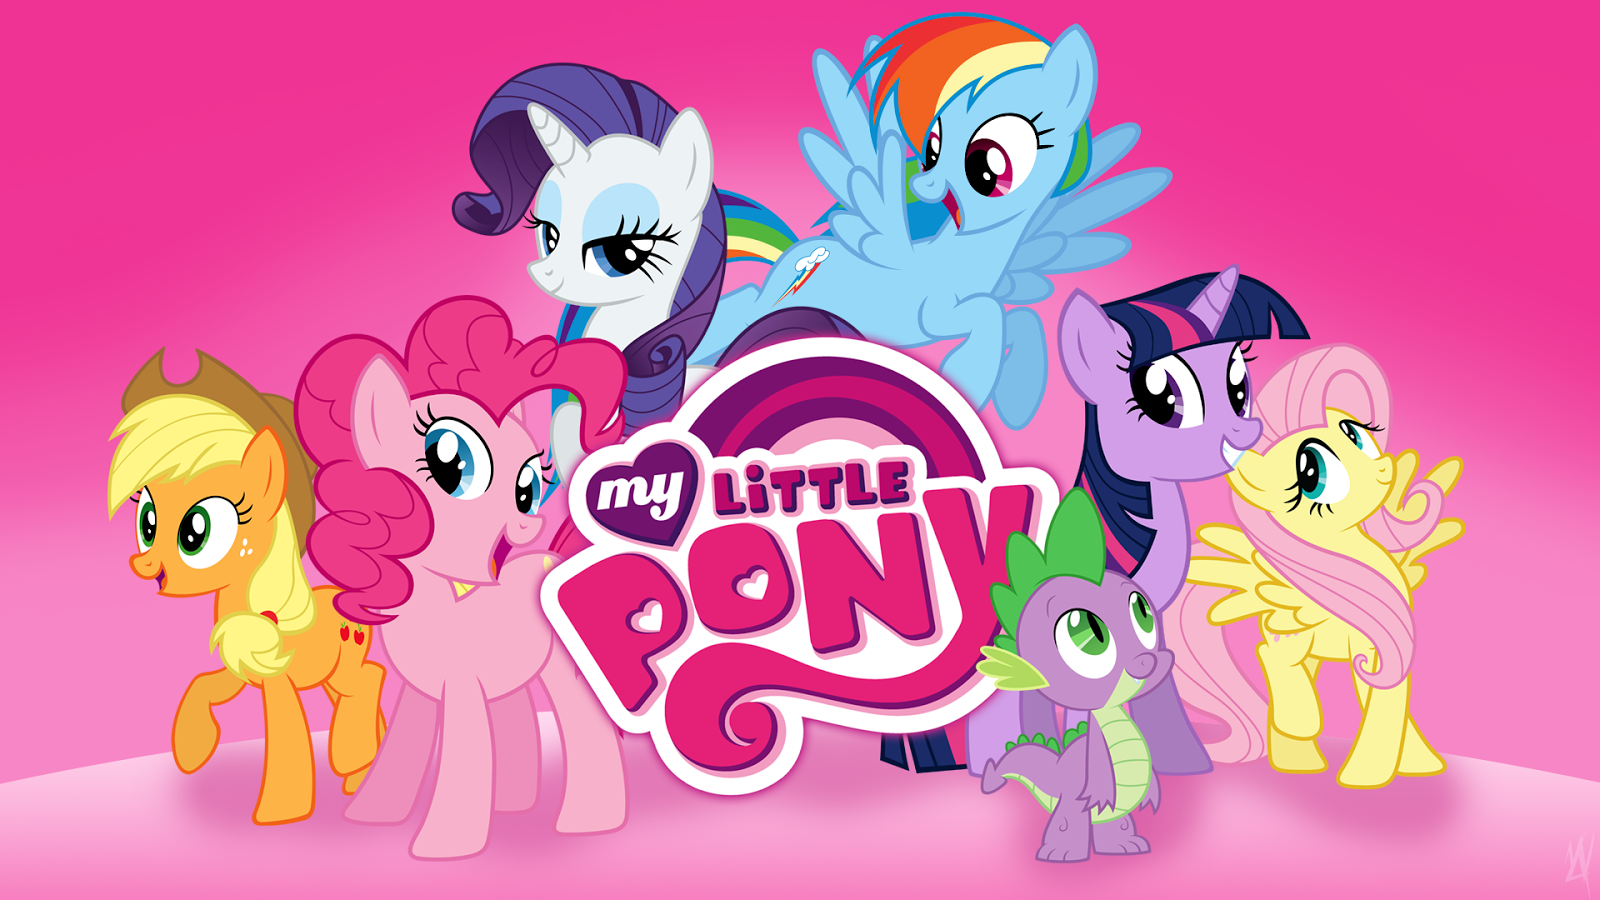 My Little Pony Friendship Is Magic Desktop Wallpaper